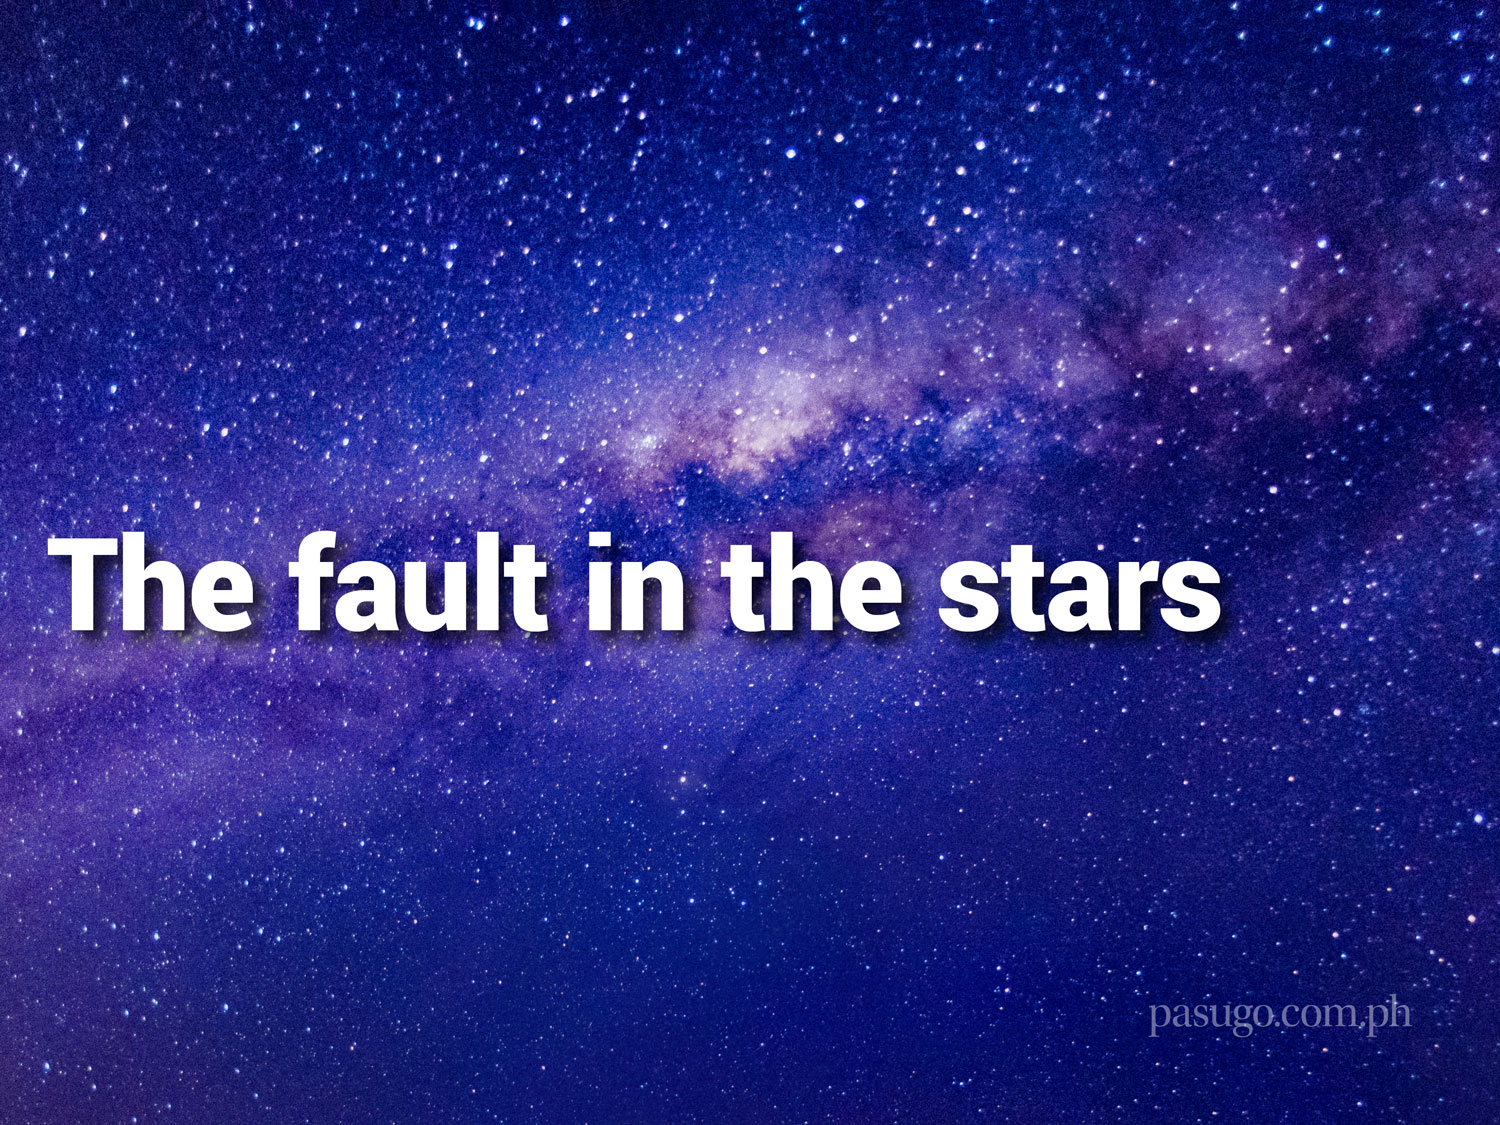 ASTROLOGY is the belief that the stars and planets strongly influence people's lives.